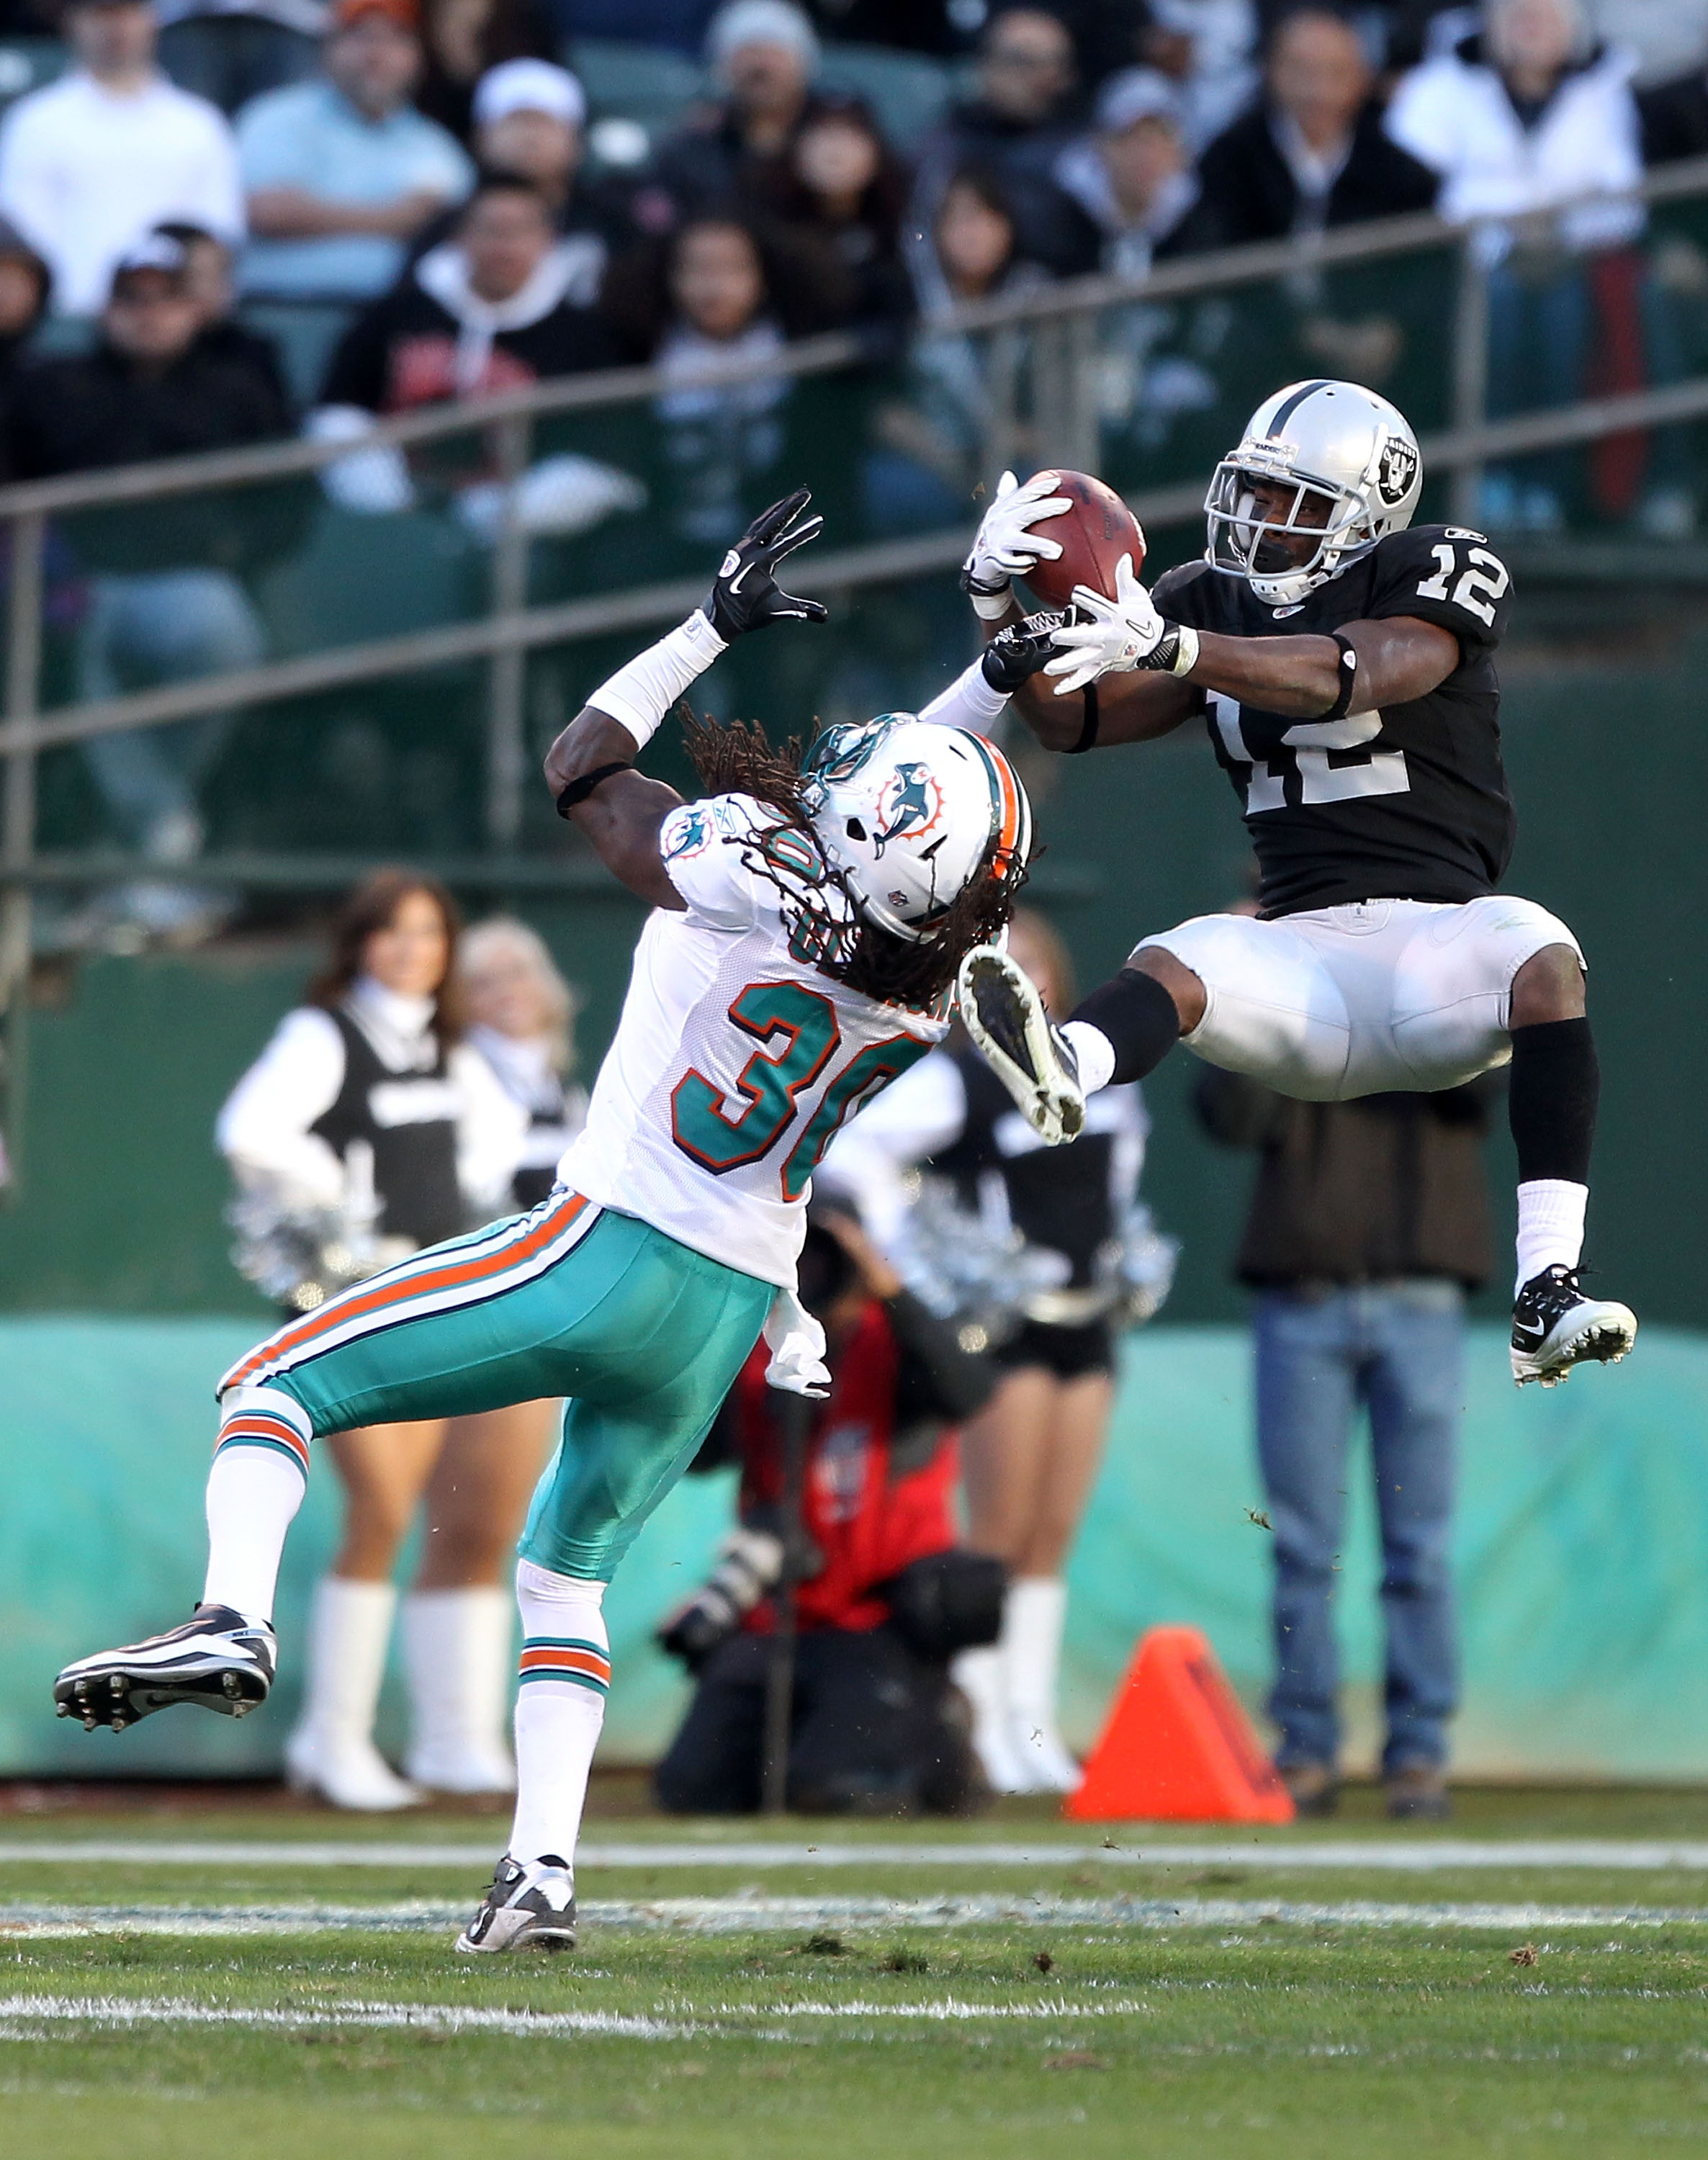 Jacoby Ford Thieves Another Interception from an Opponent. The QBs on this Team Owe this Kid a New Car for Saving them on Multiple Occasions